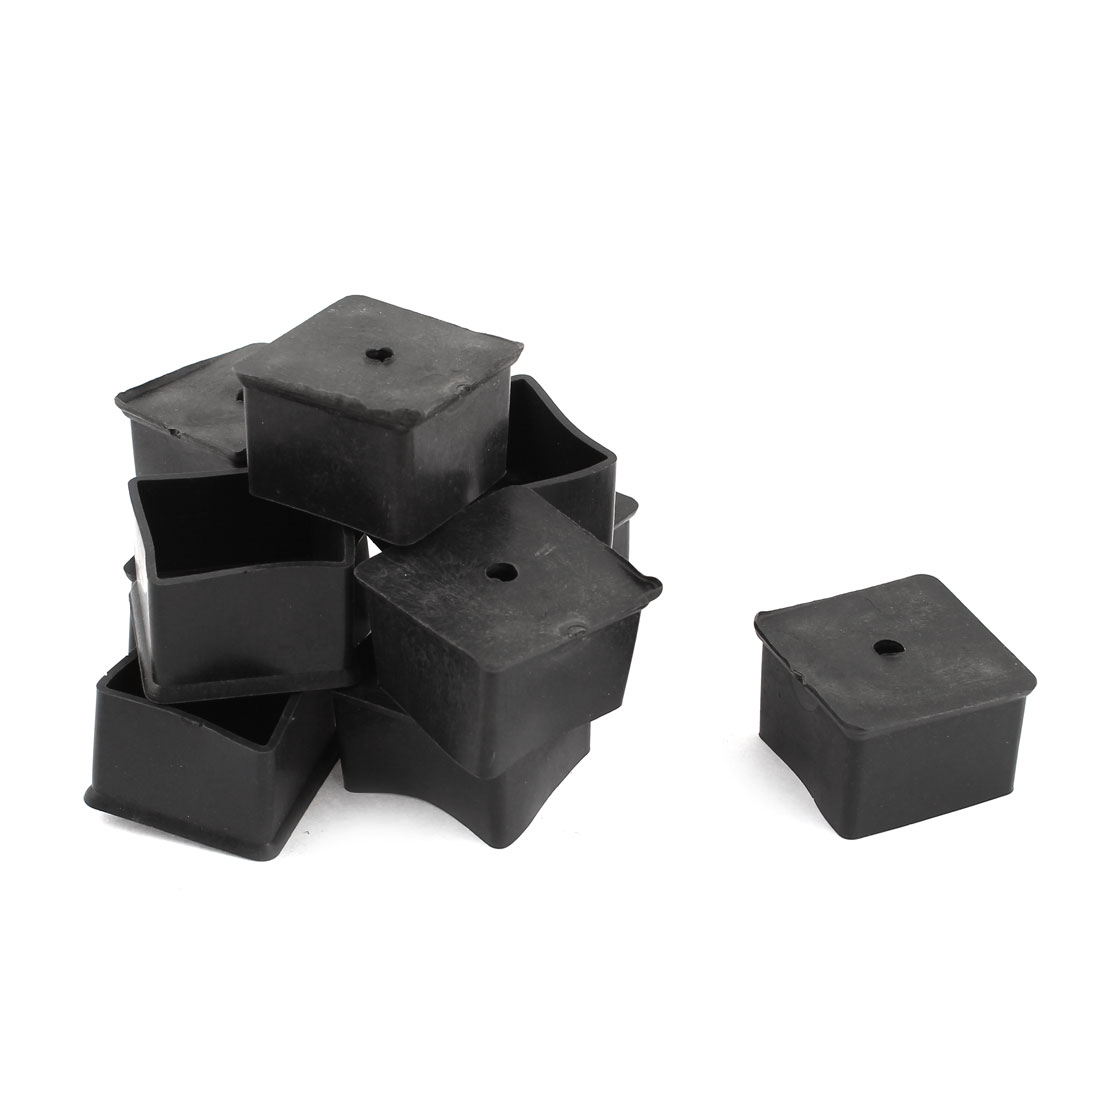 10 Pcs Rubber Furniture Desk Foot Protect Pads Cover Black 45x45x30mm